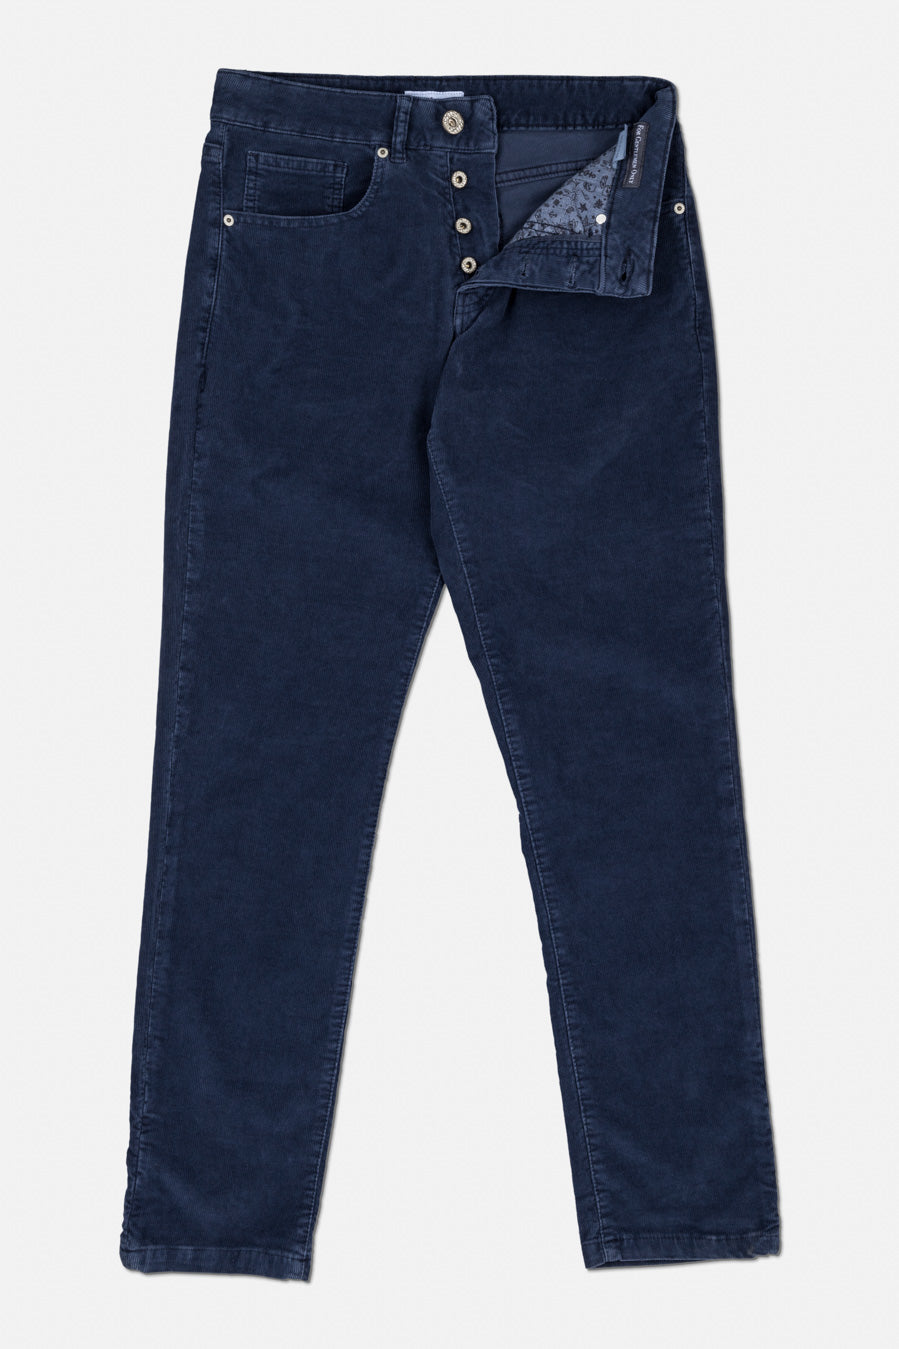 5 Pocket Pana Navy